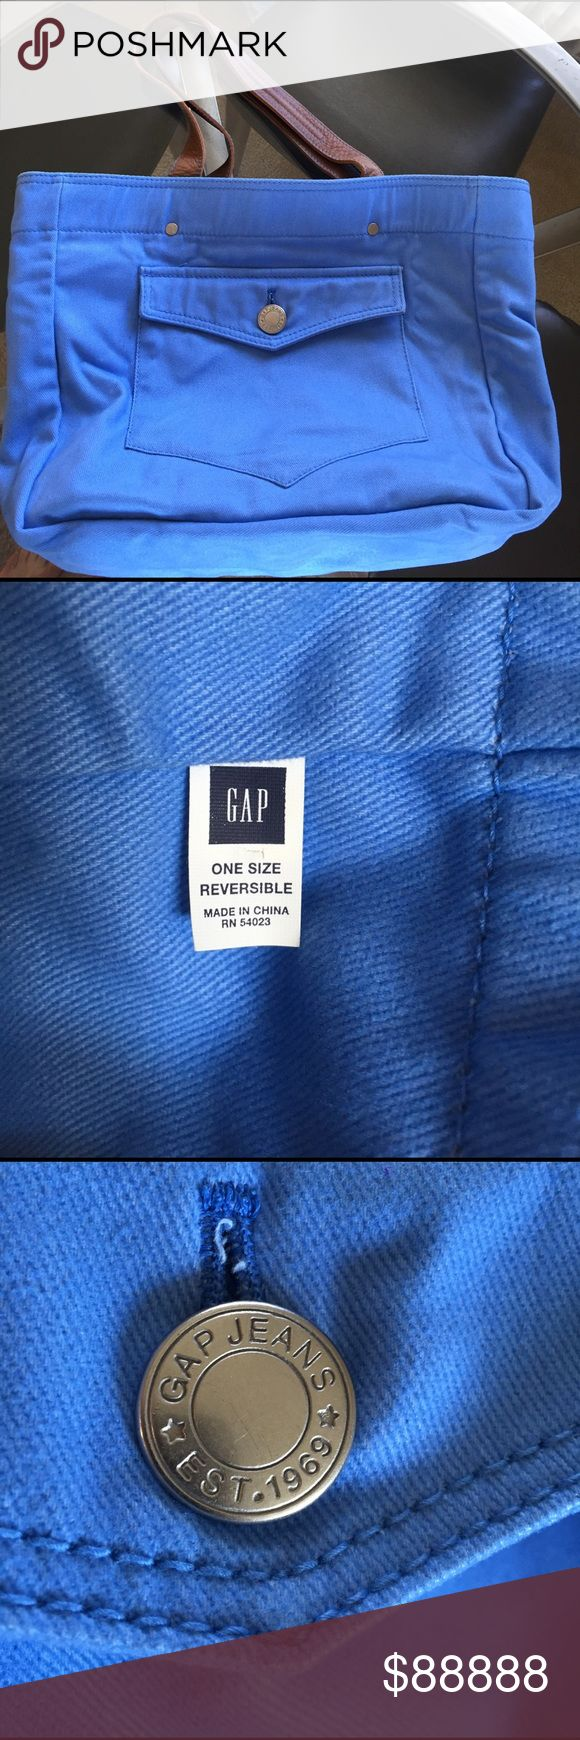 EUC Reversible GAP Tote: Leather & Cotton This EUC GAP Tote Bag is made of heavy weight baby-soft cotton. Reversible from a gorgeous solid blue to multi blue stripes.  Solid blue side features a functional one button pocket. The striped side does not have a pocket.  Leather straps with beautiful blue stitching.   Used once & stored.   The striped side has a small, very faint area of discoloration near the handle. See last photo. Priced accordingly. GAP Bags Totes